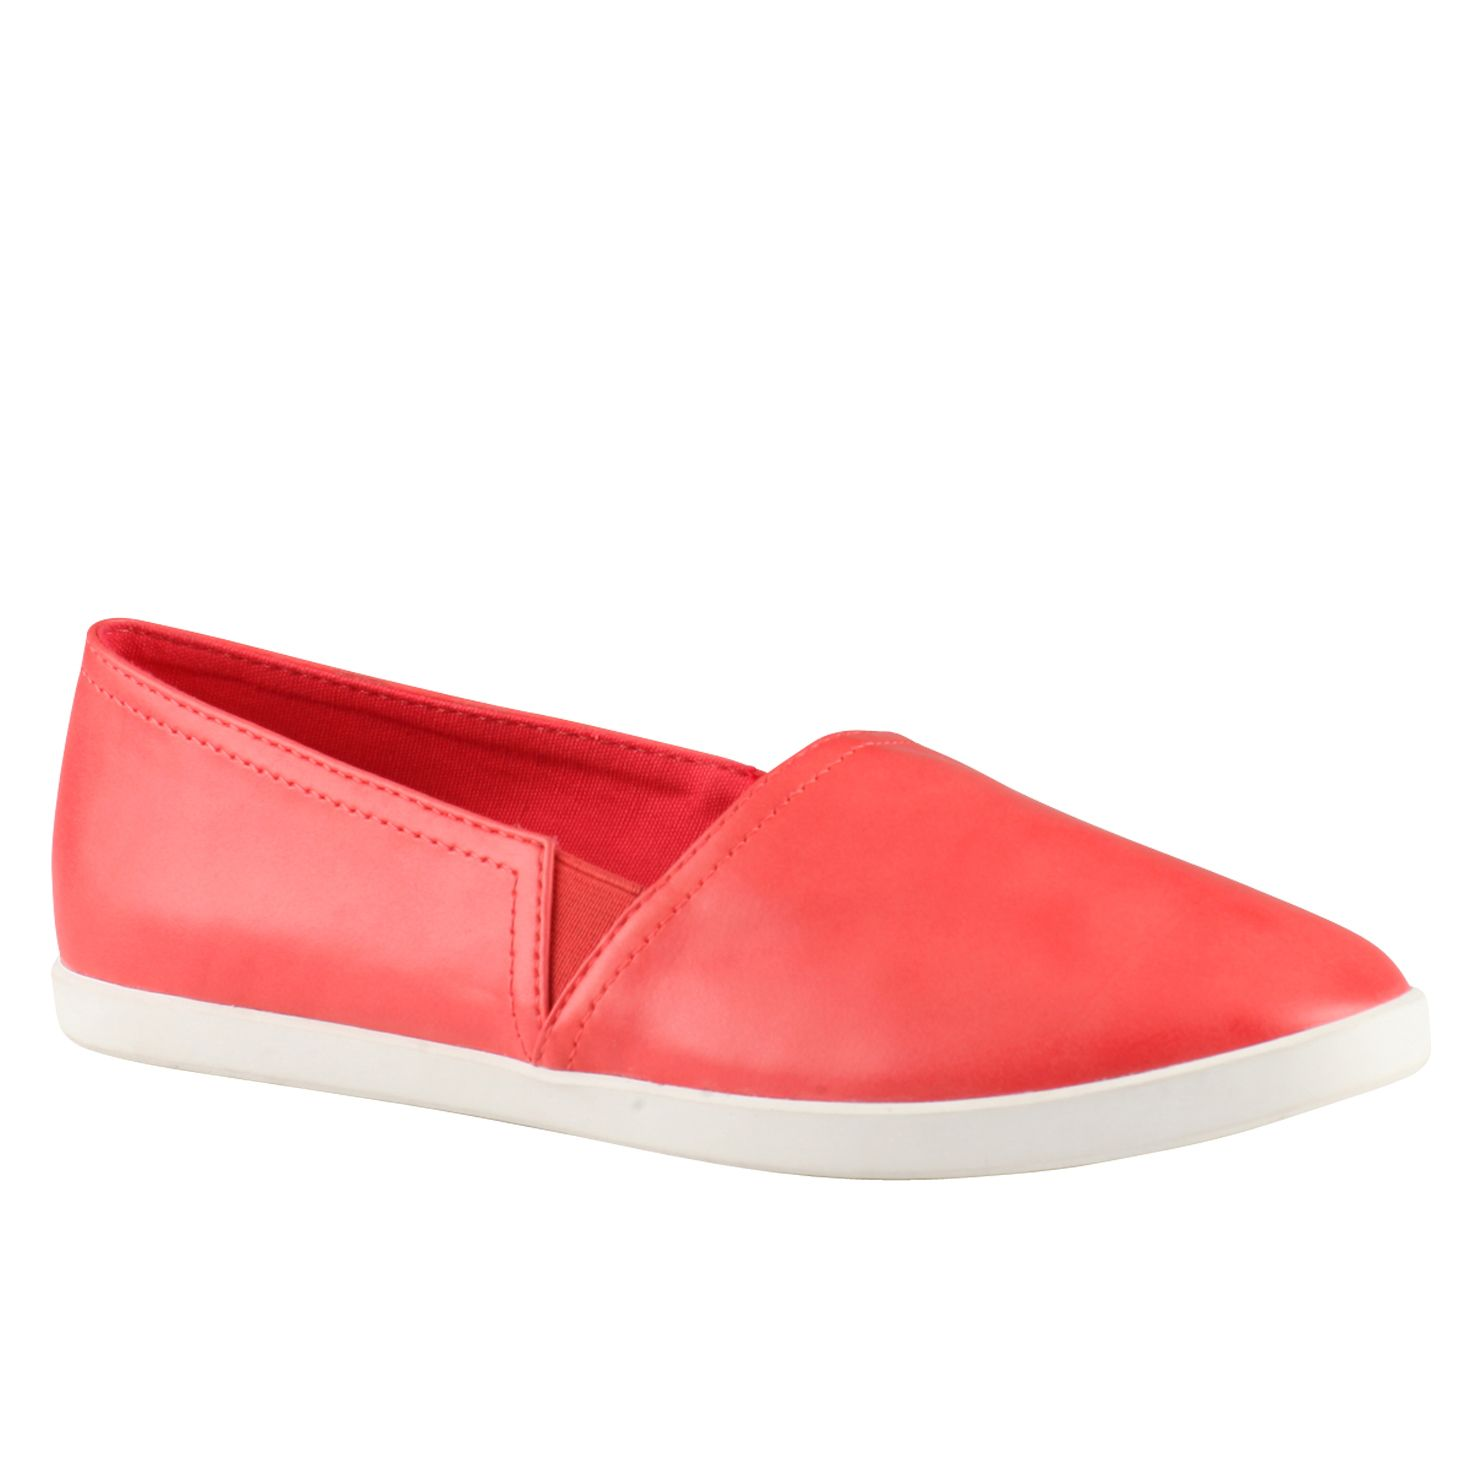 Brilia slip on espadrille shoes